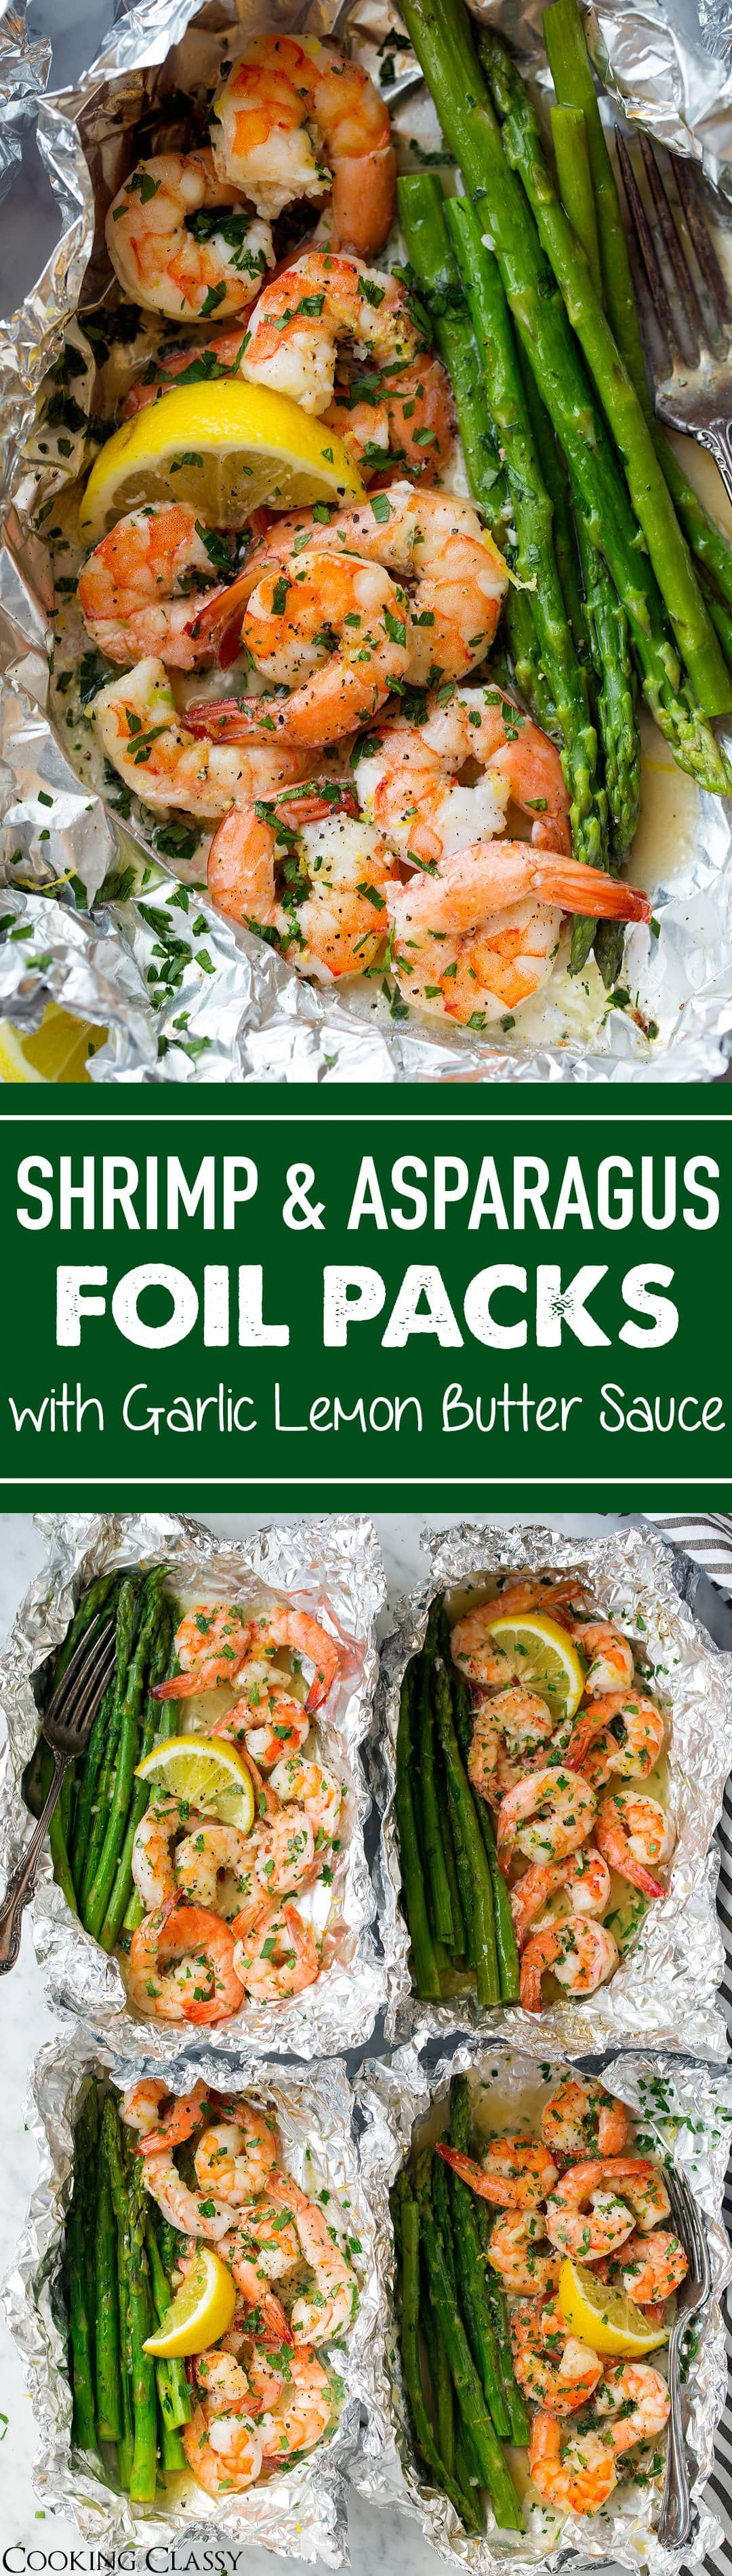 Shrimp and asparagus are cooked together in individual foil packs in a rich buttery sauce. The bright lemon pairs perfectly here and the garlic adds so much flavor. Cook them on the grill or in the oven.